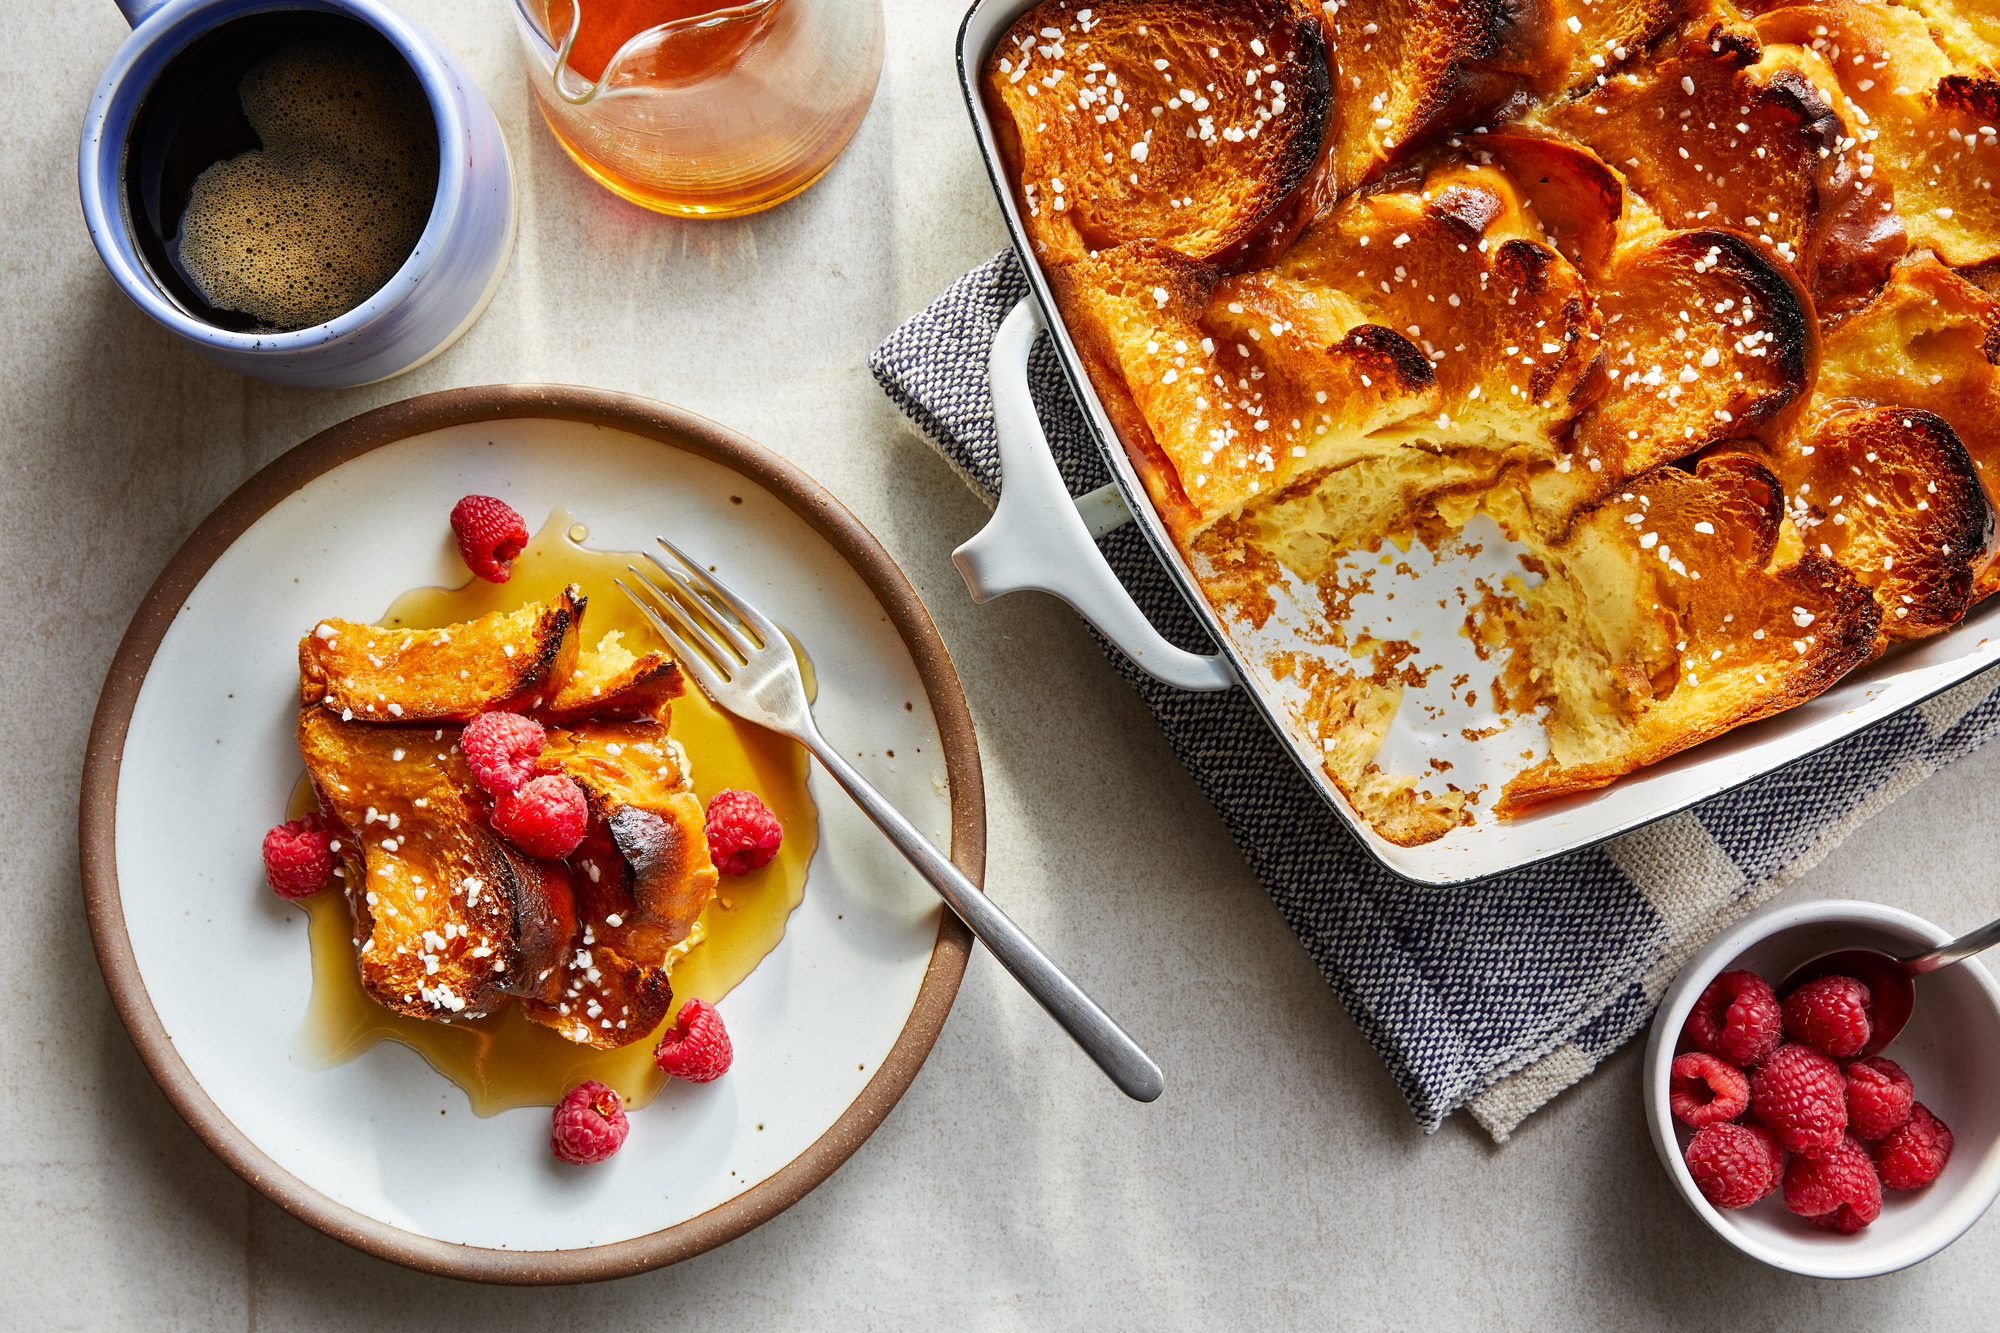 Cardamom Baked French Toast Recipe